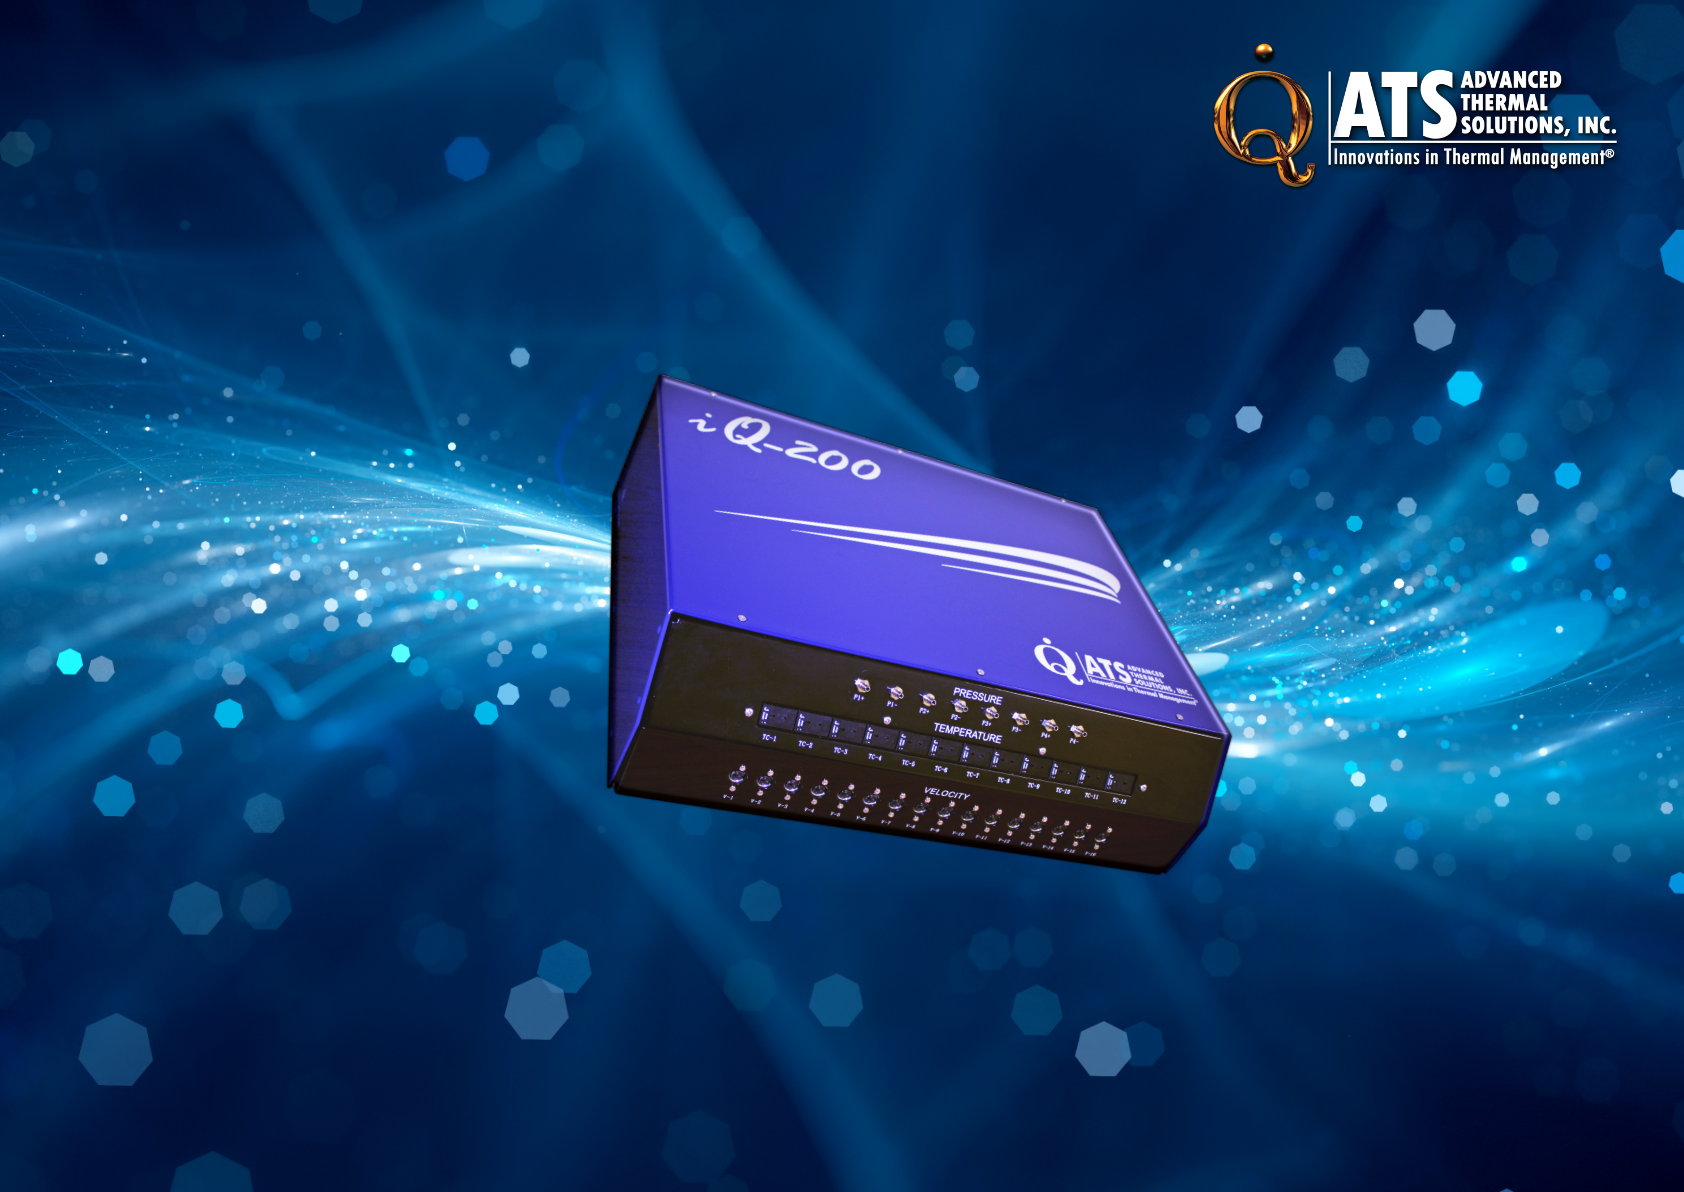 ATS Thermal Test and Analysis Instruments and Wind Tunnels Now Carried by Mouser and Digi-Key